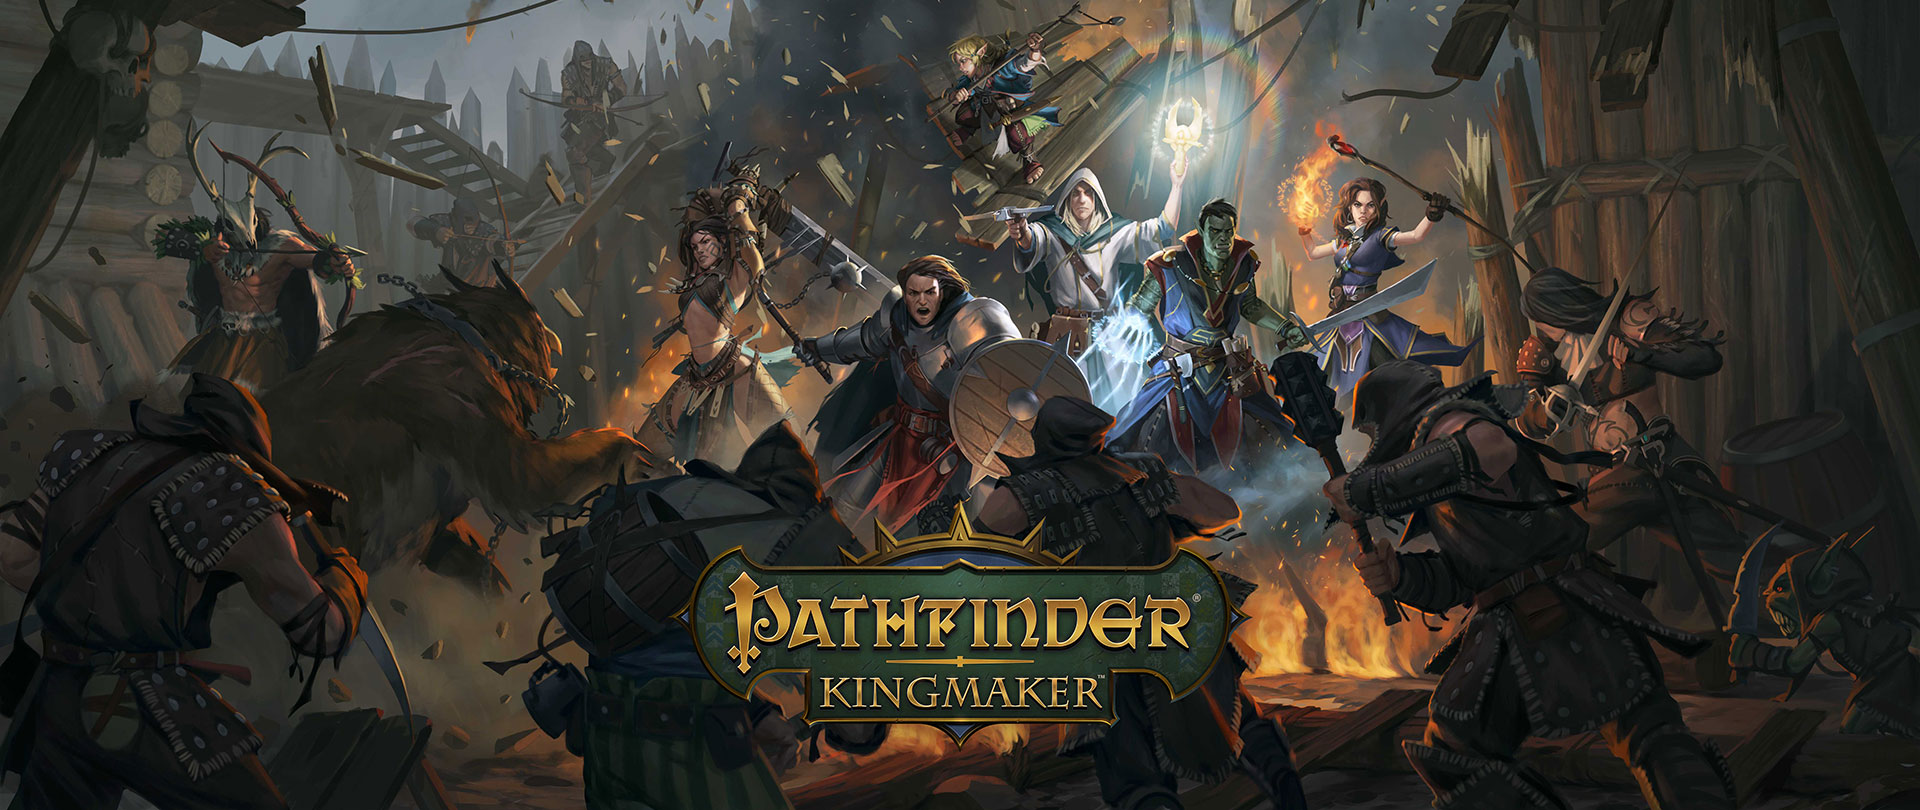 Pathfinder: Kingmaker Release Date and Digital Editions